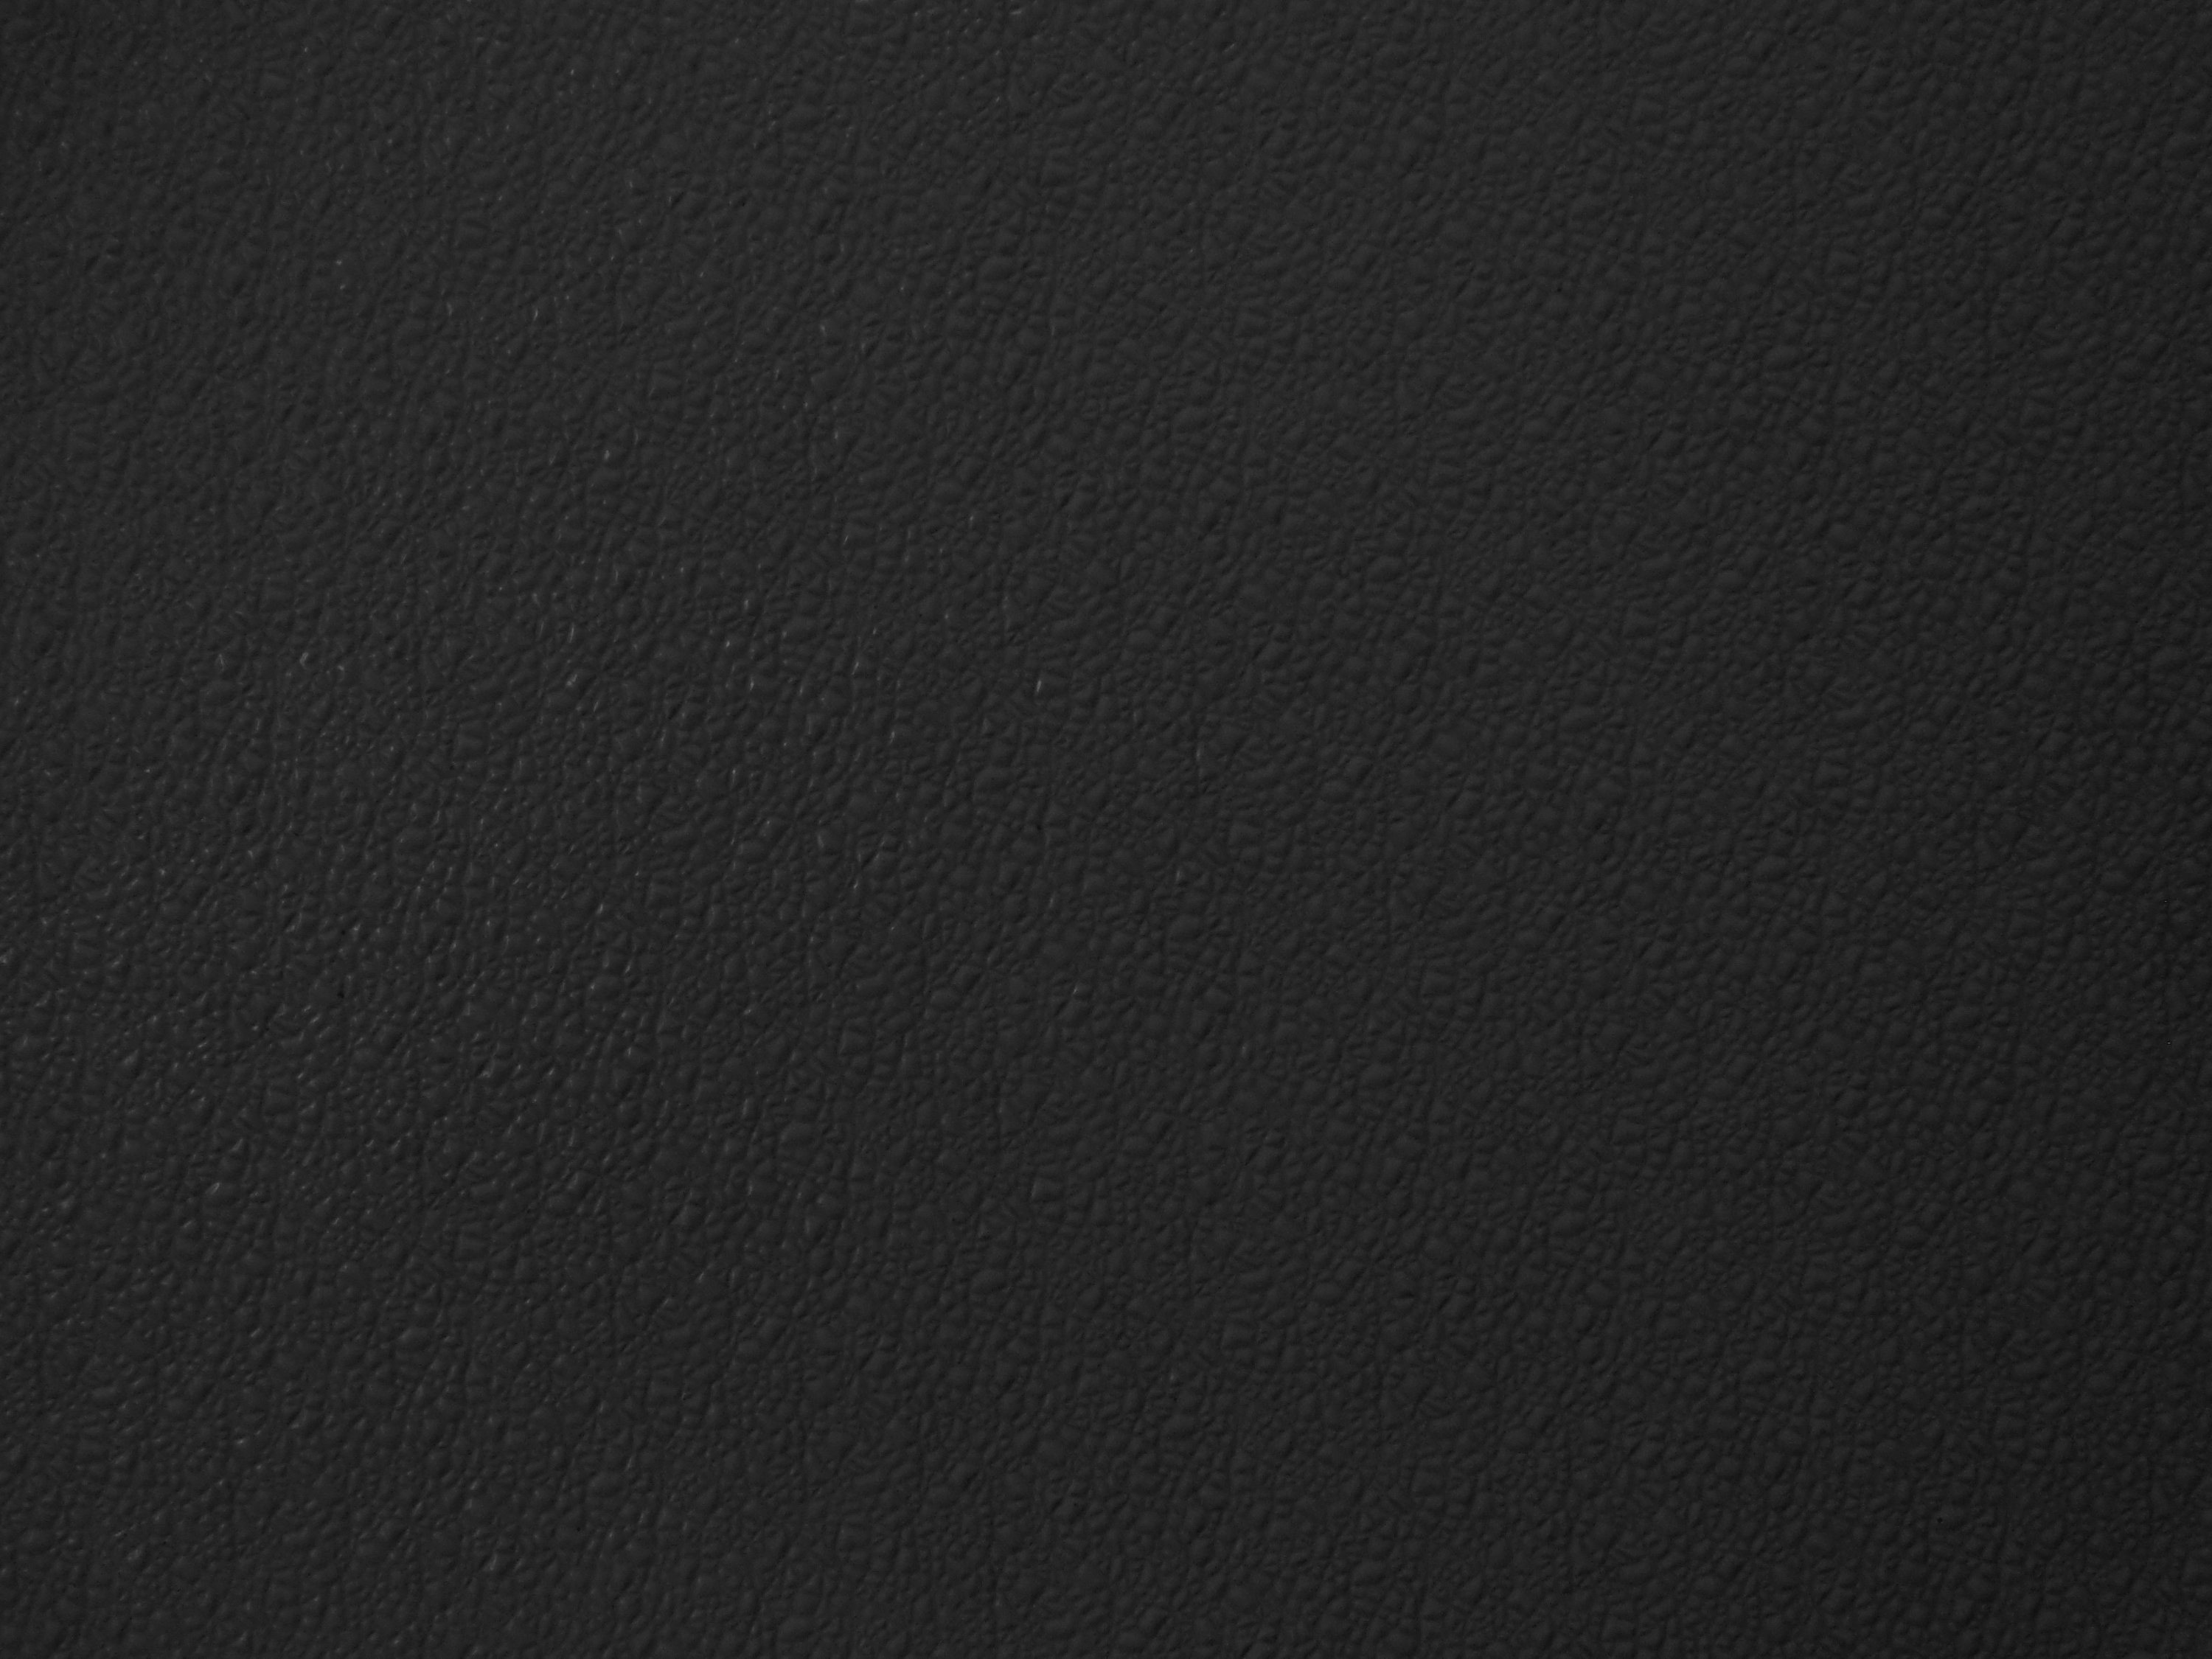 Car Background Wallpaper Hd Download Bumpy Black Plastic Texture Photos Public Domain